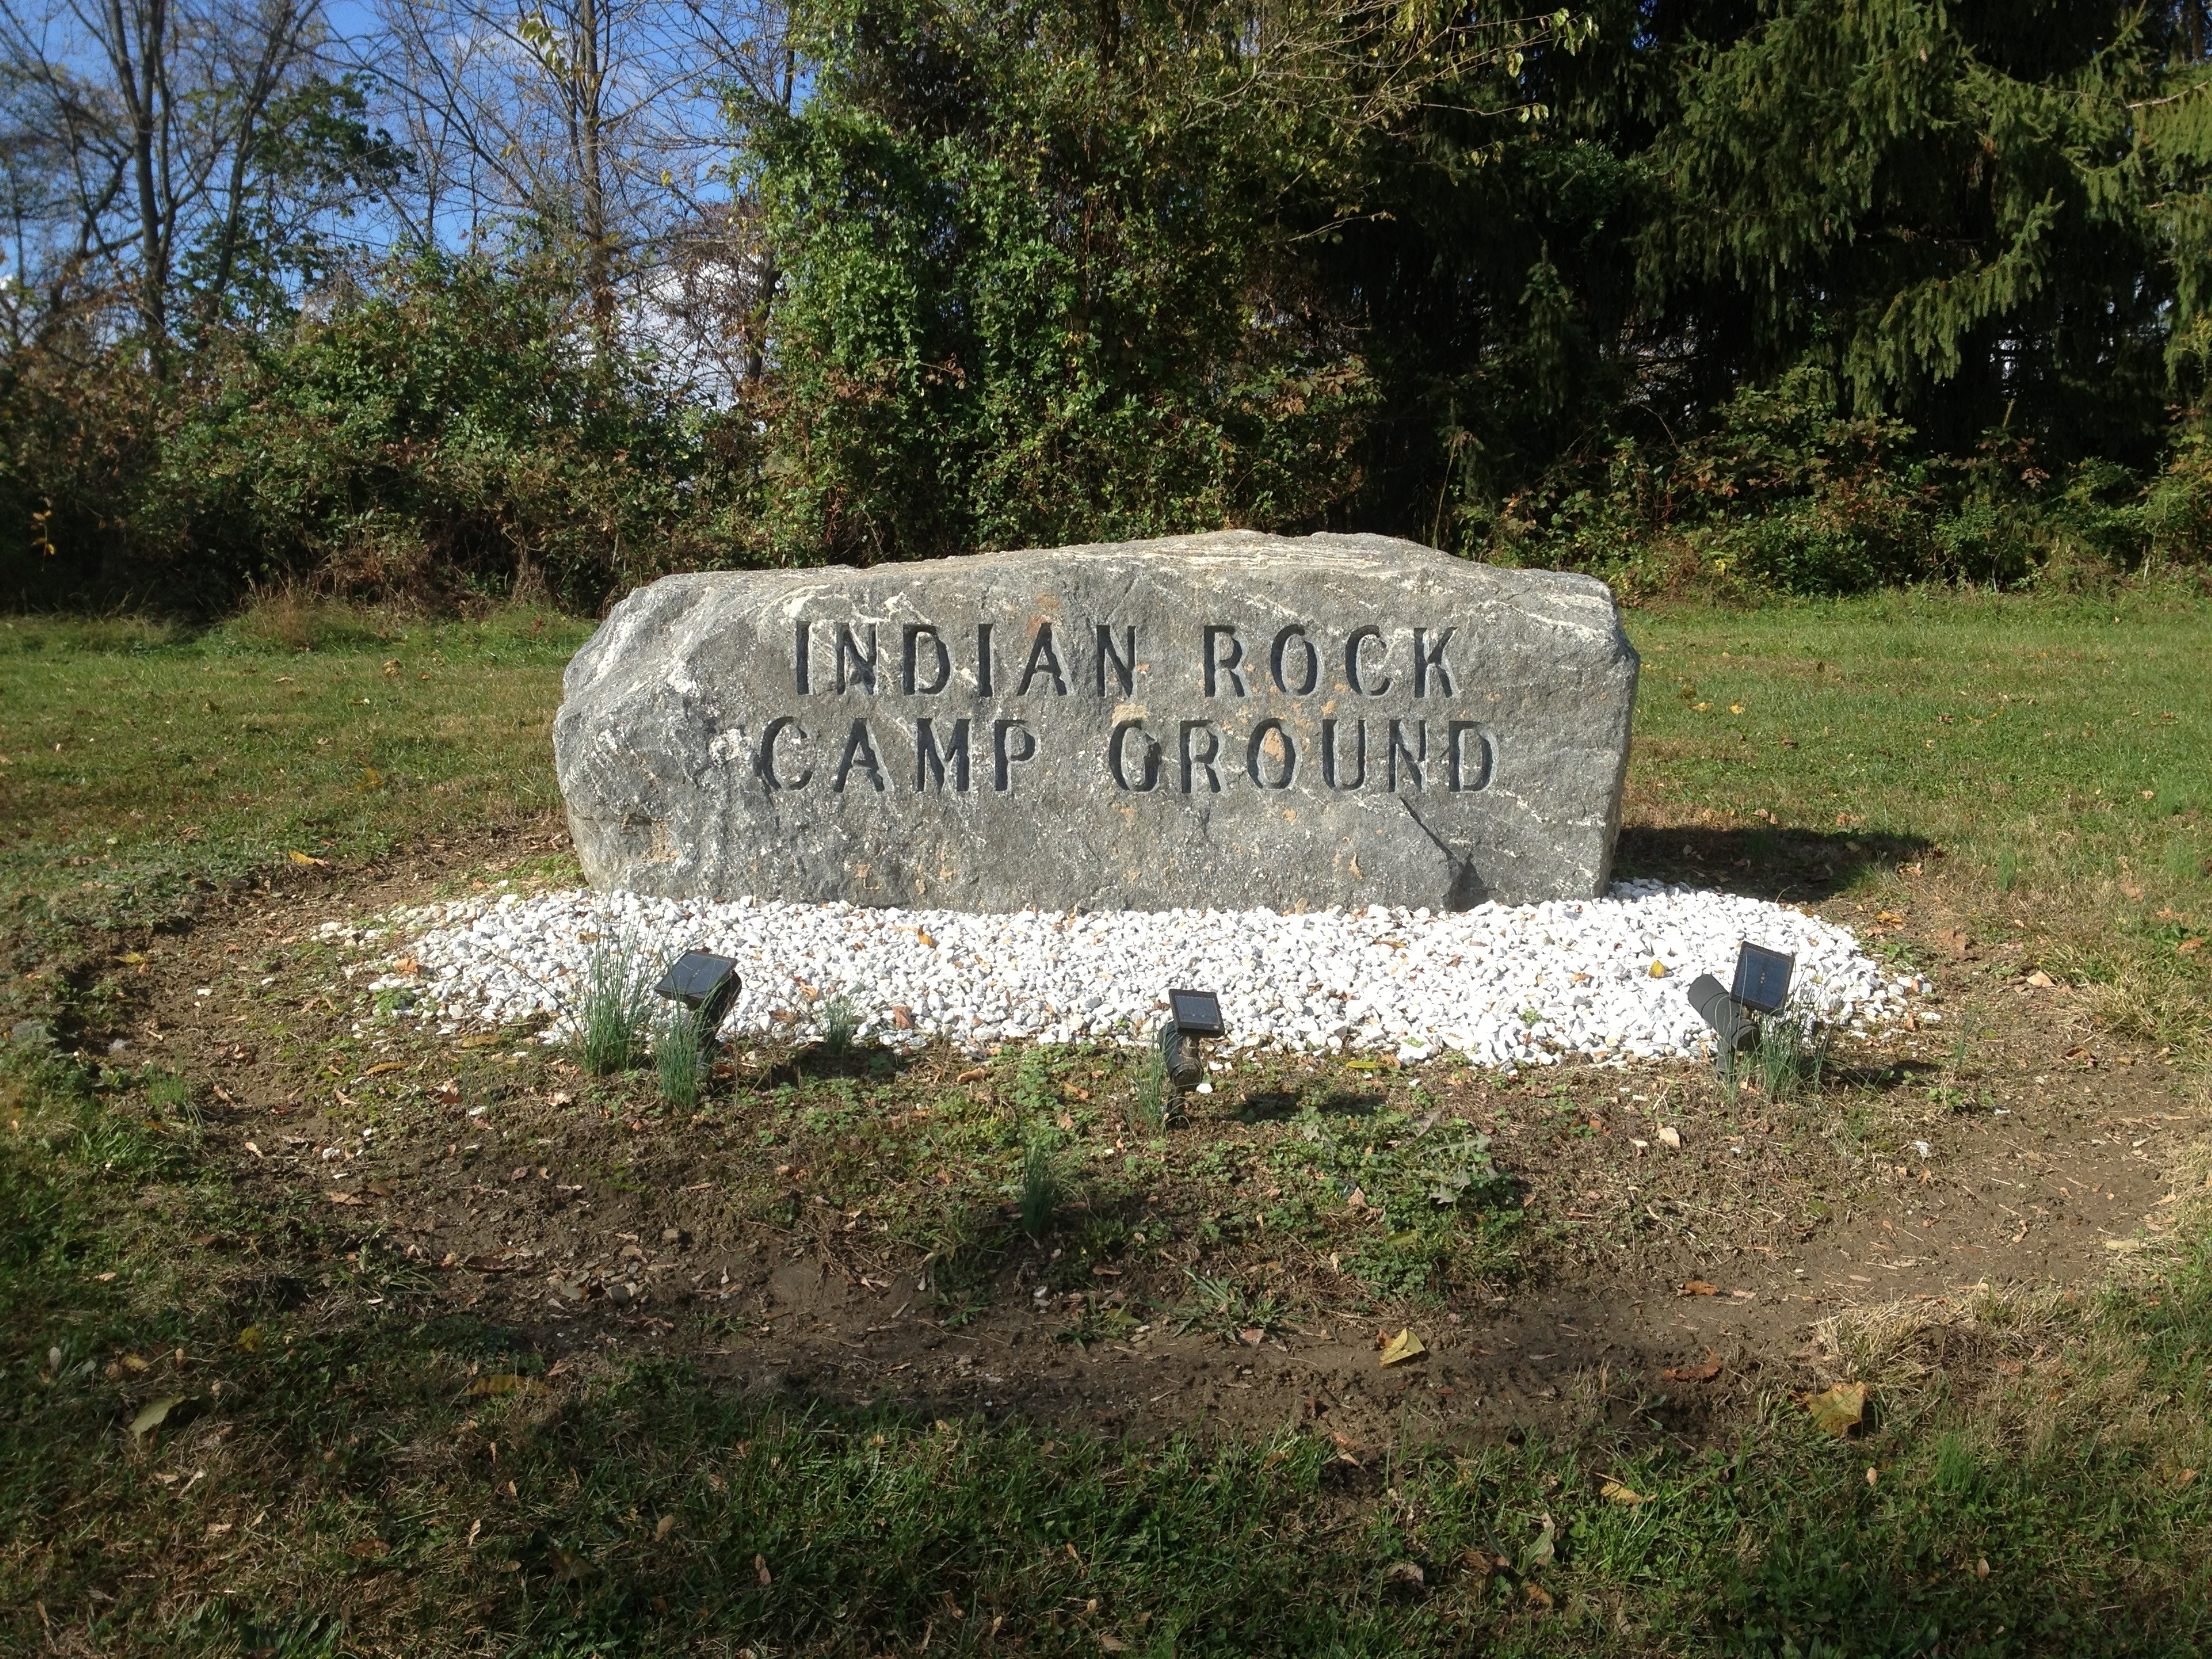 Indian Rock Campground will welcome you and your pooch.